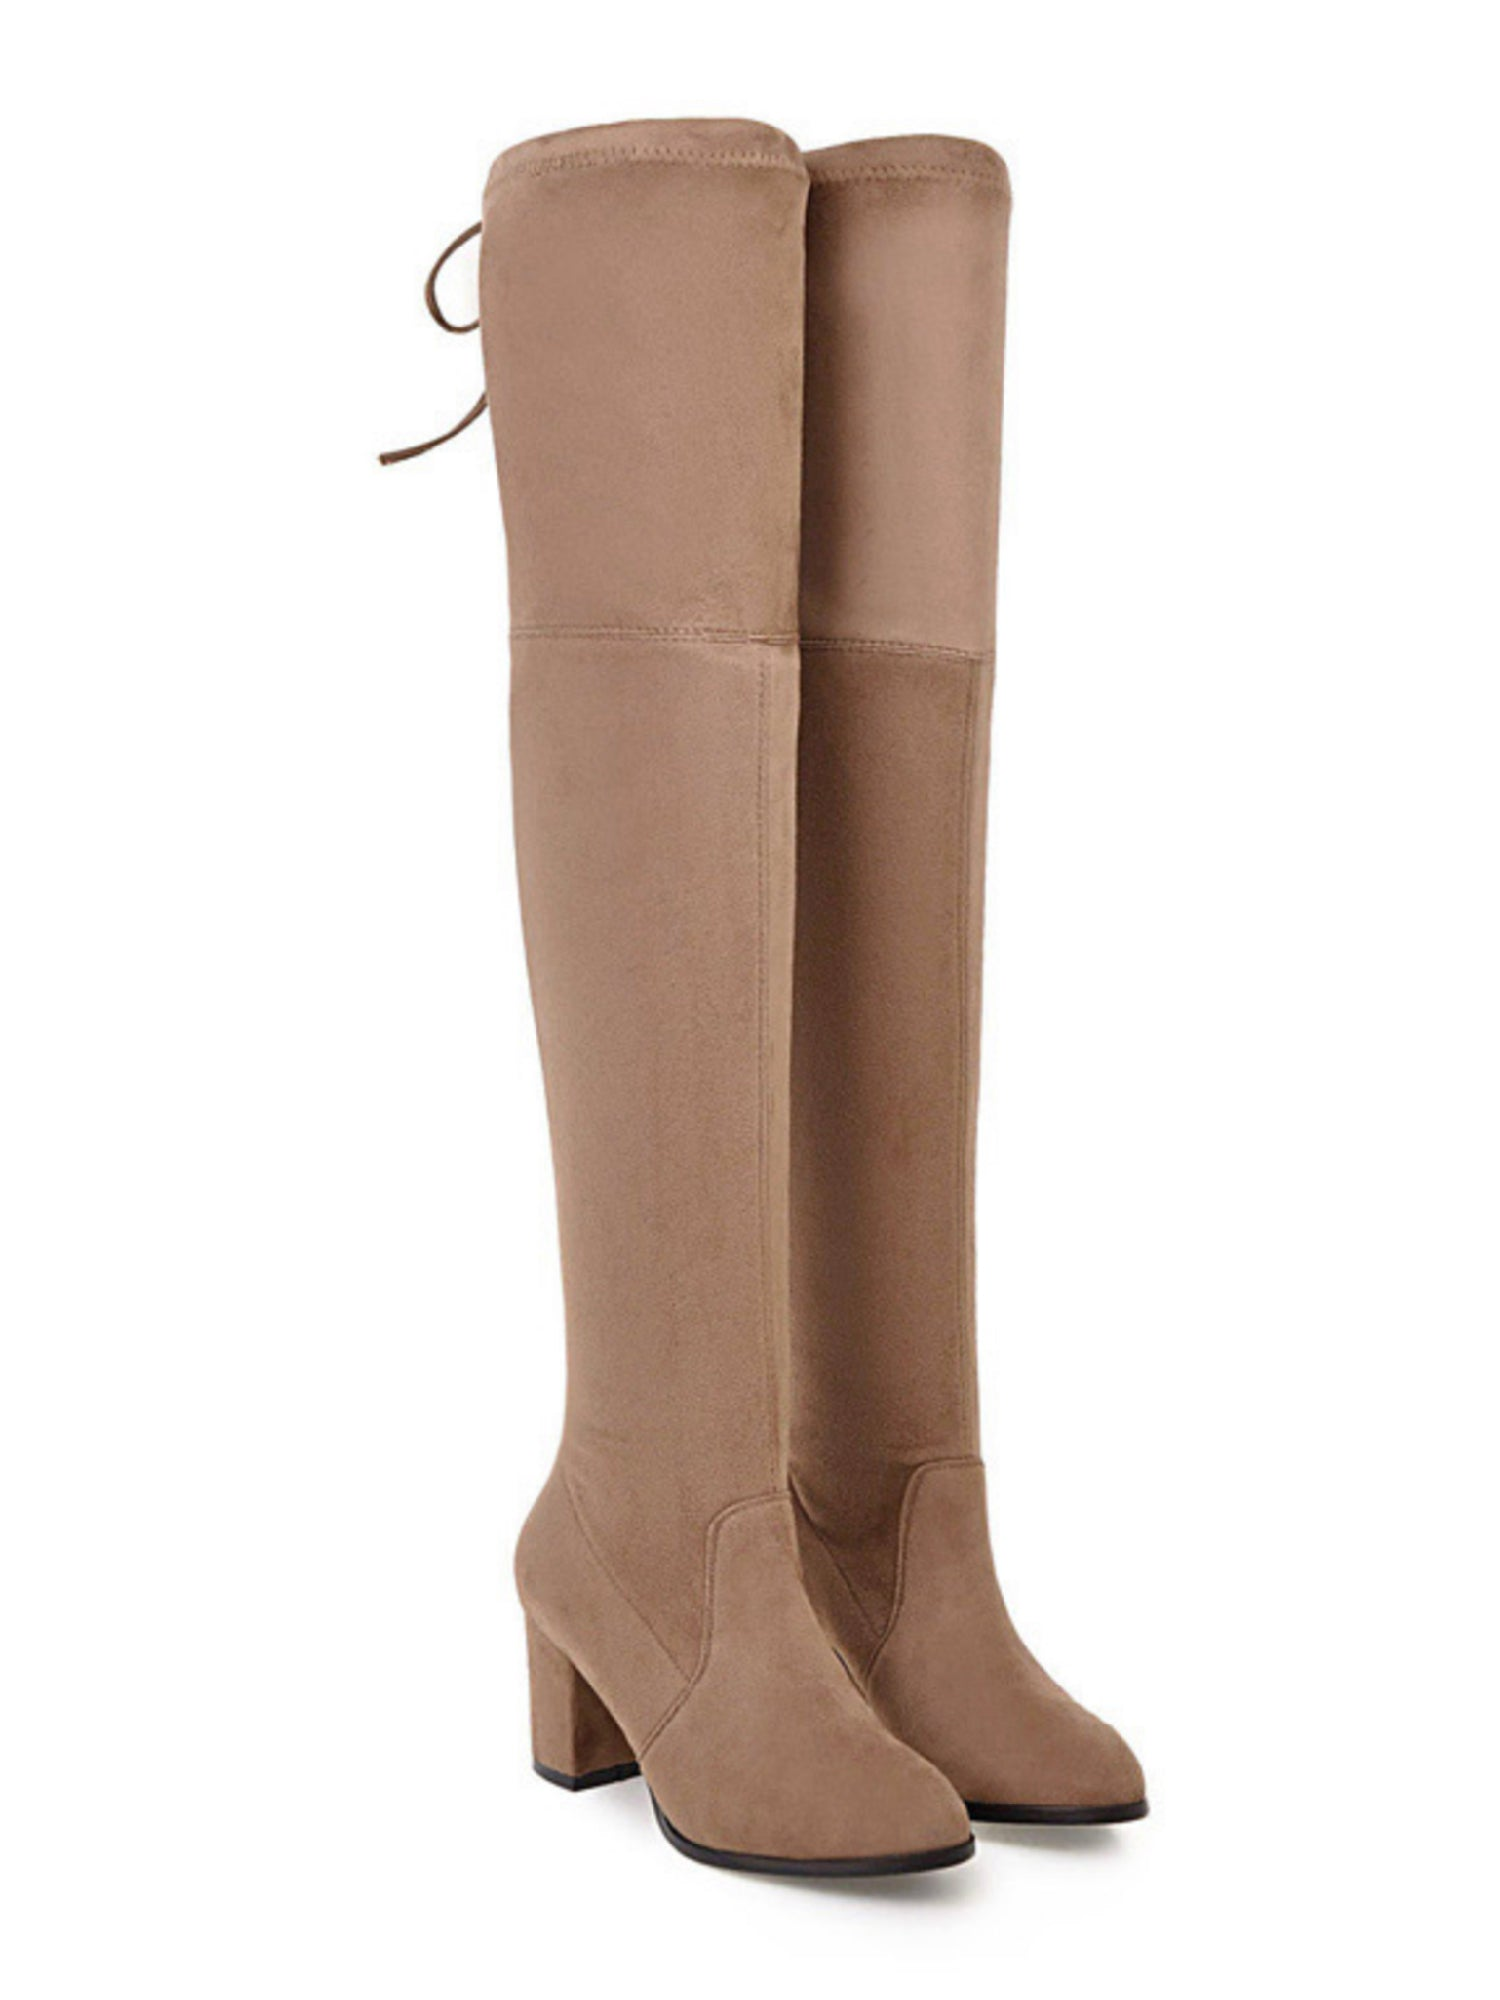 'Julie' Heeled Over The Knee Boots (5 Colors)